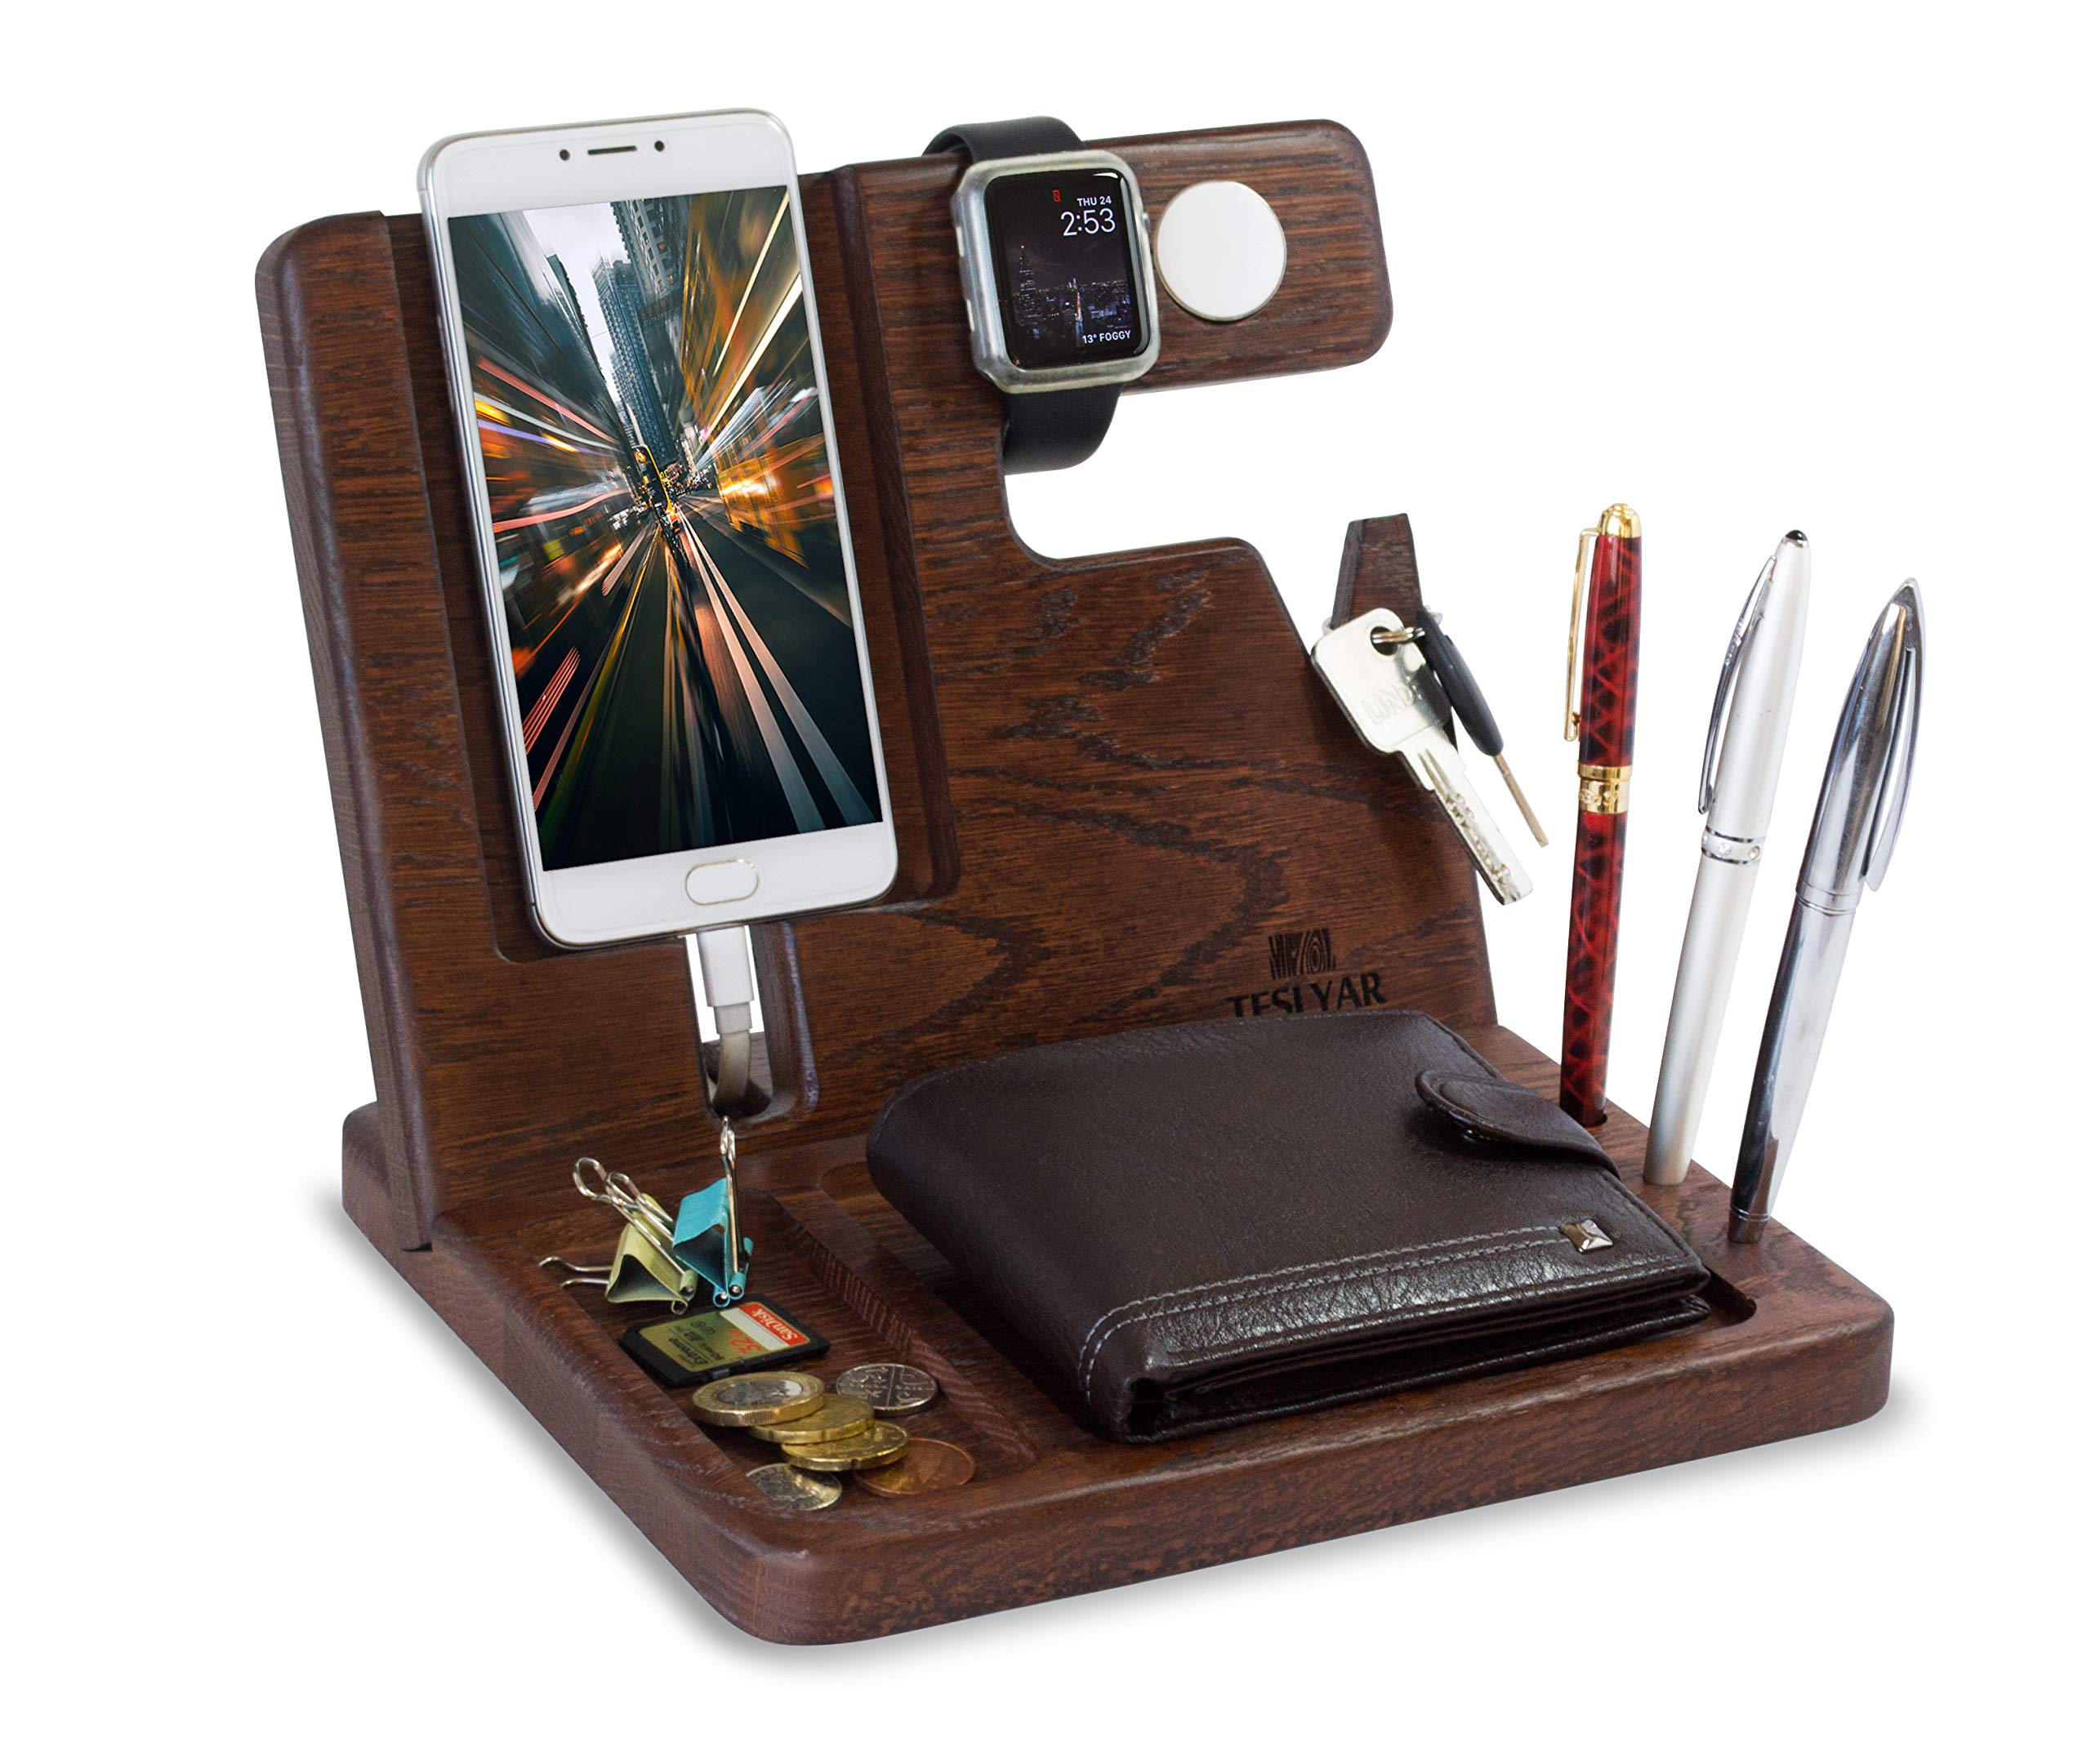 Wood Phone Docking Station Oak Key Holder Wallet Stand Watch Organizer Men Gift Husband Wife Anniversary Dad Birthday Nightstand Purse Father Graduation Male Travel Idea Gadgets Solid by TESLYAR